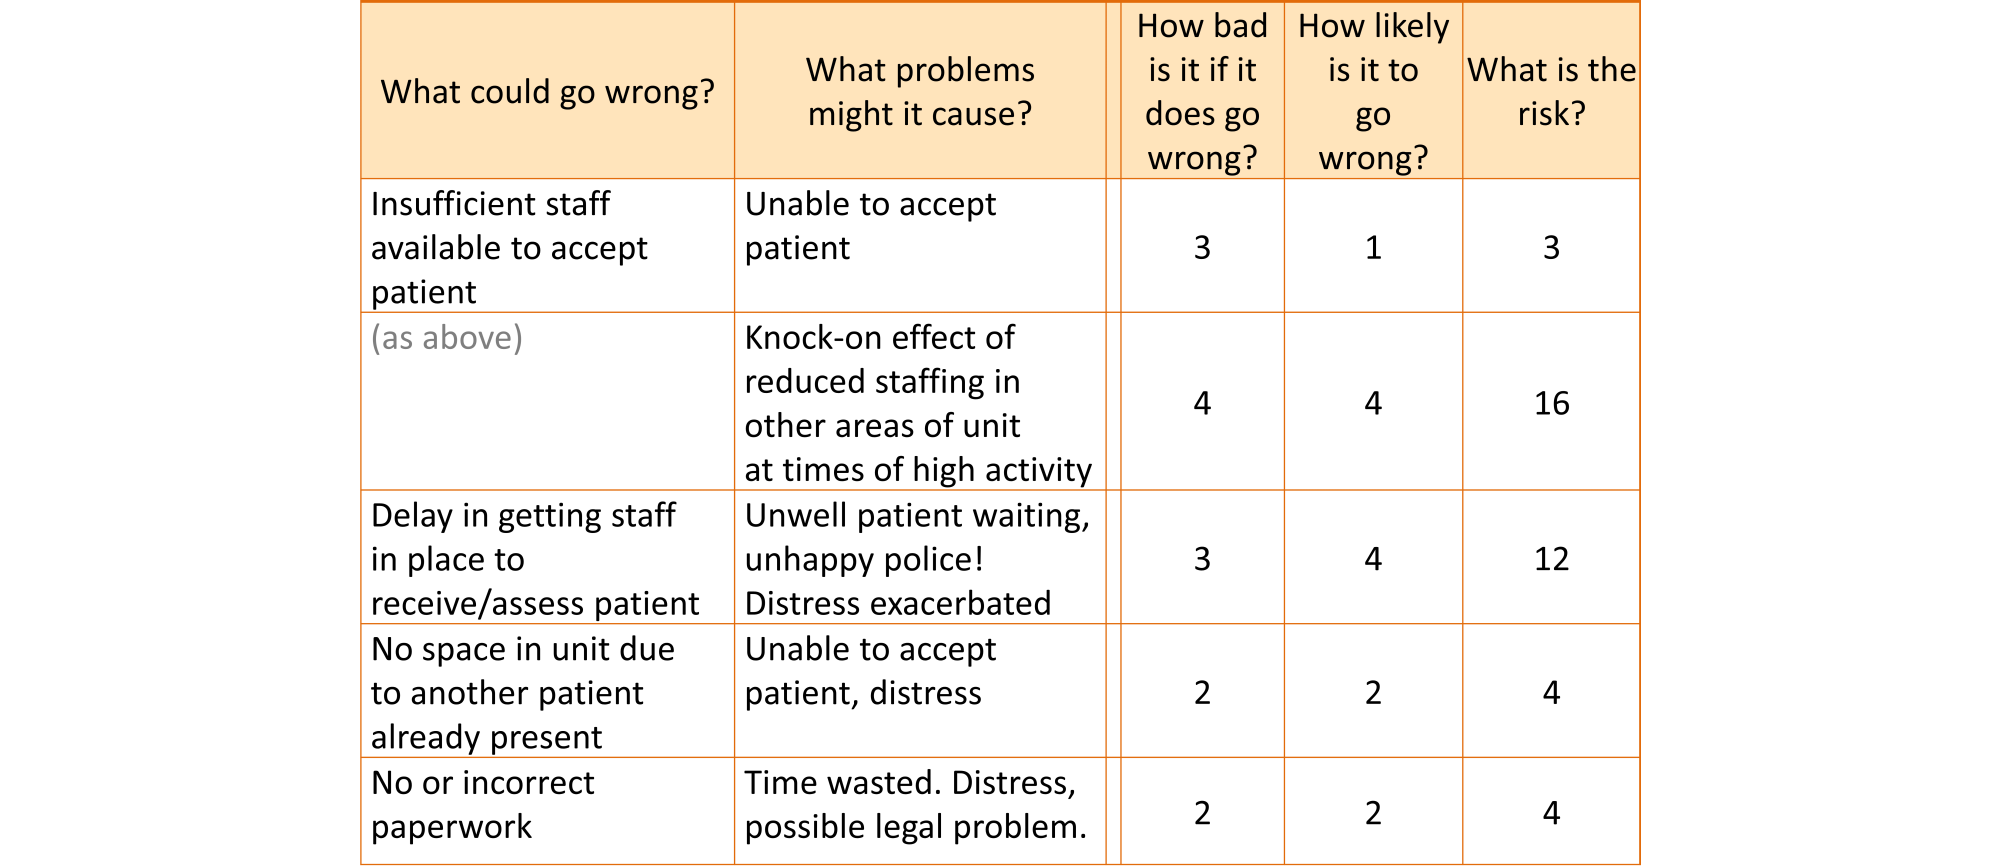 Portion of a risk table, showing some of the risk scores. For example, the issue: Insufficient staff available to accept patient, leading to being unable to accept the patient, has an impact of 3 and a likelihood of 1, and thus a risk score of 3. The issue of insufficient staff leading to reduced staff in other areas of the unit has an impact of 4 and a likelihood of 4, resulting in a risk of 16. Other risks are rated 12, 4 and 4.